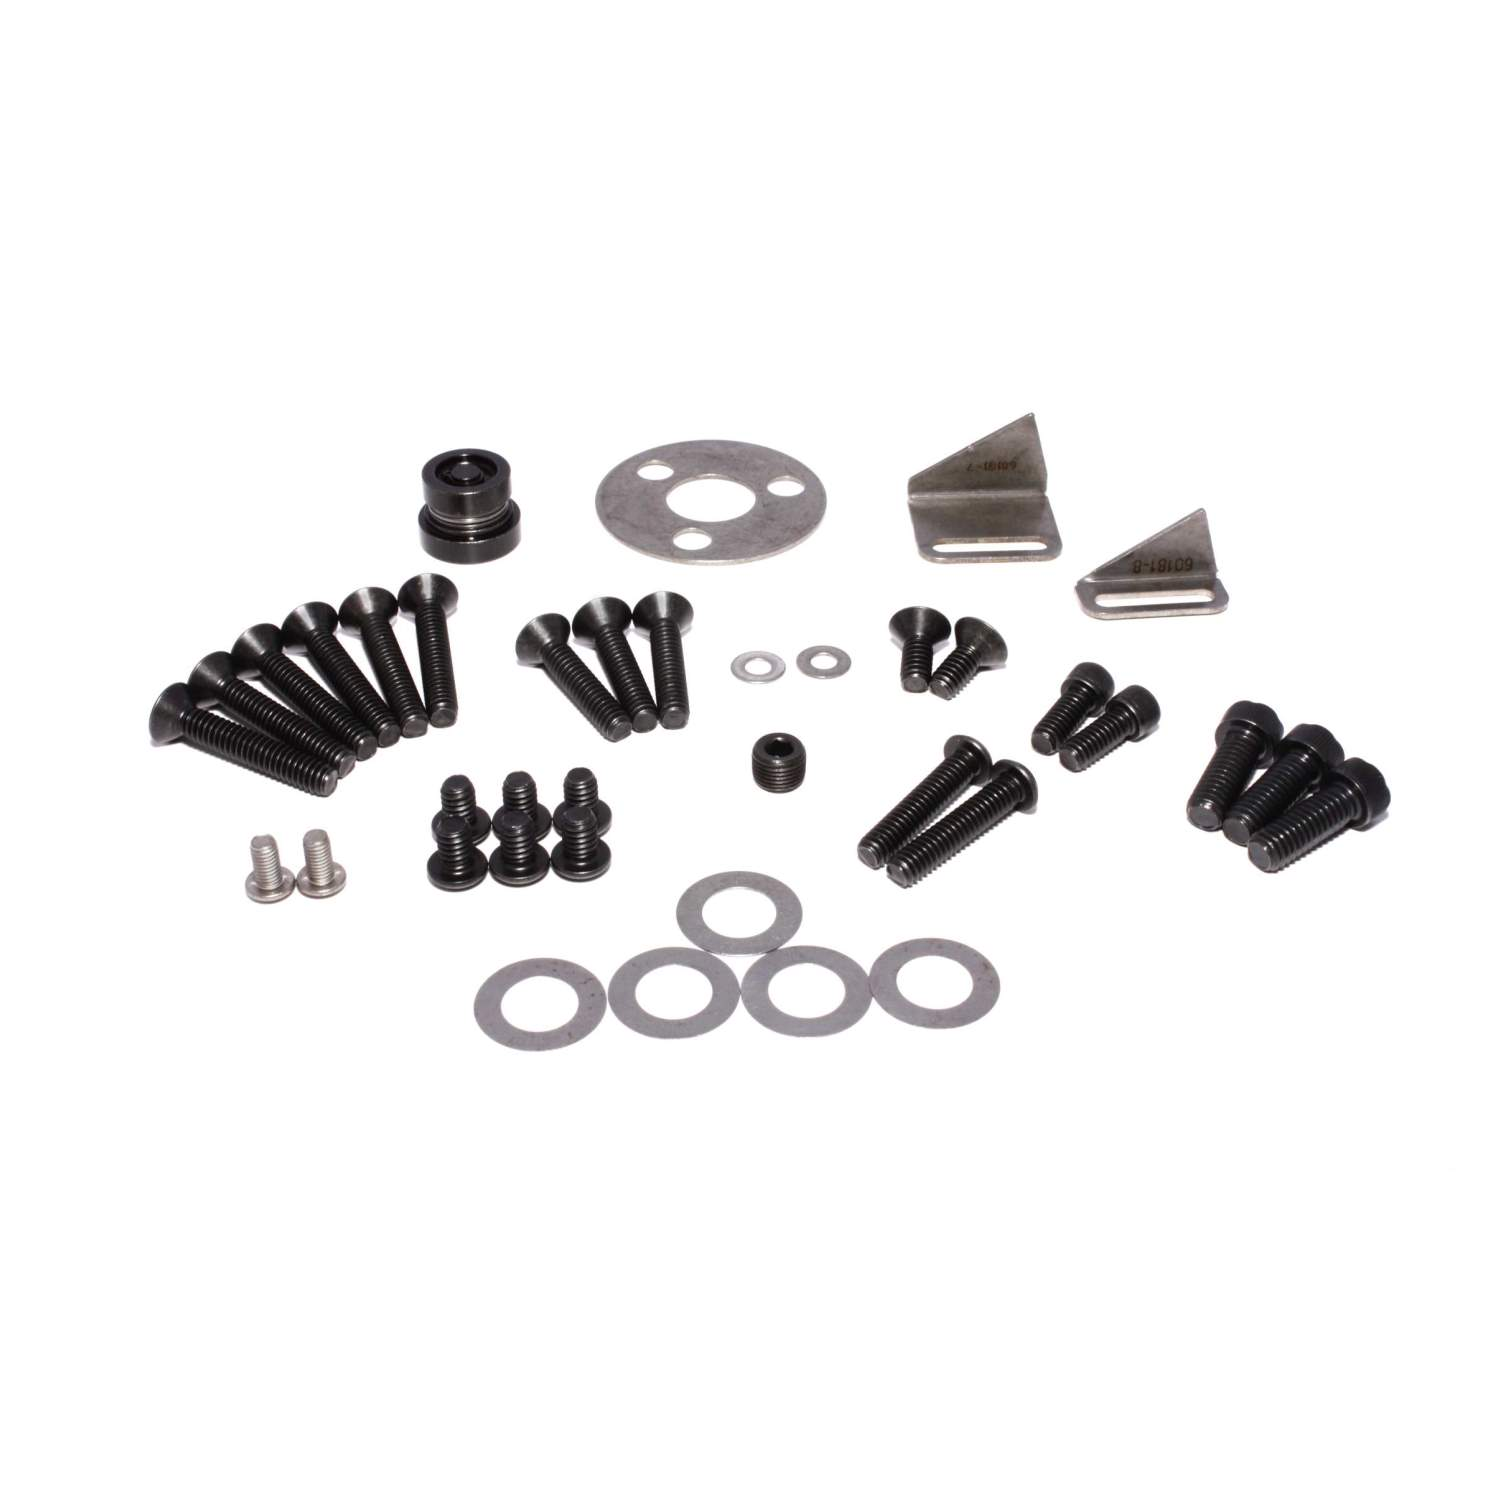 Hardware Kit For 210 Two Piece Billet Aluminum Timing